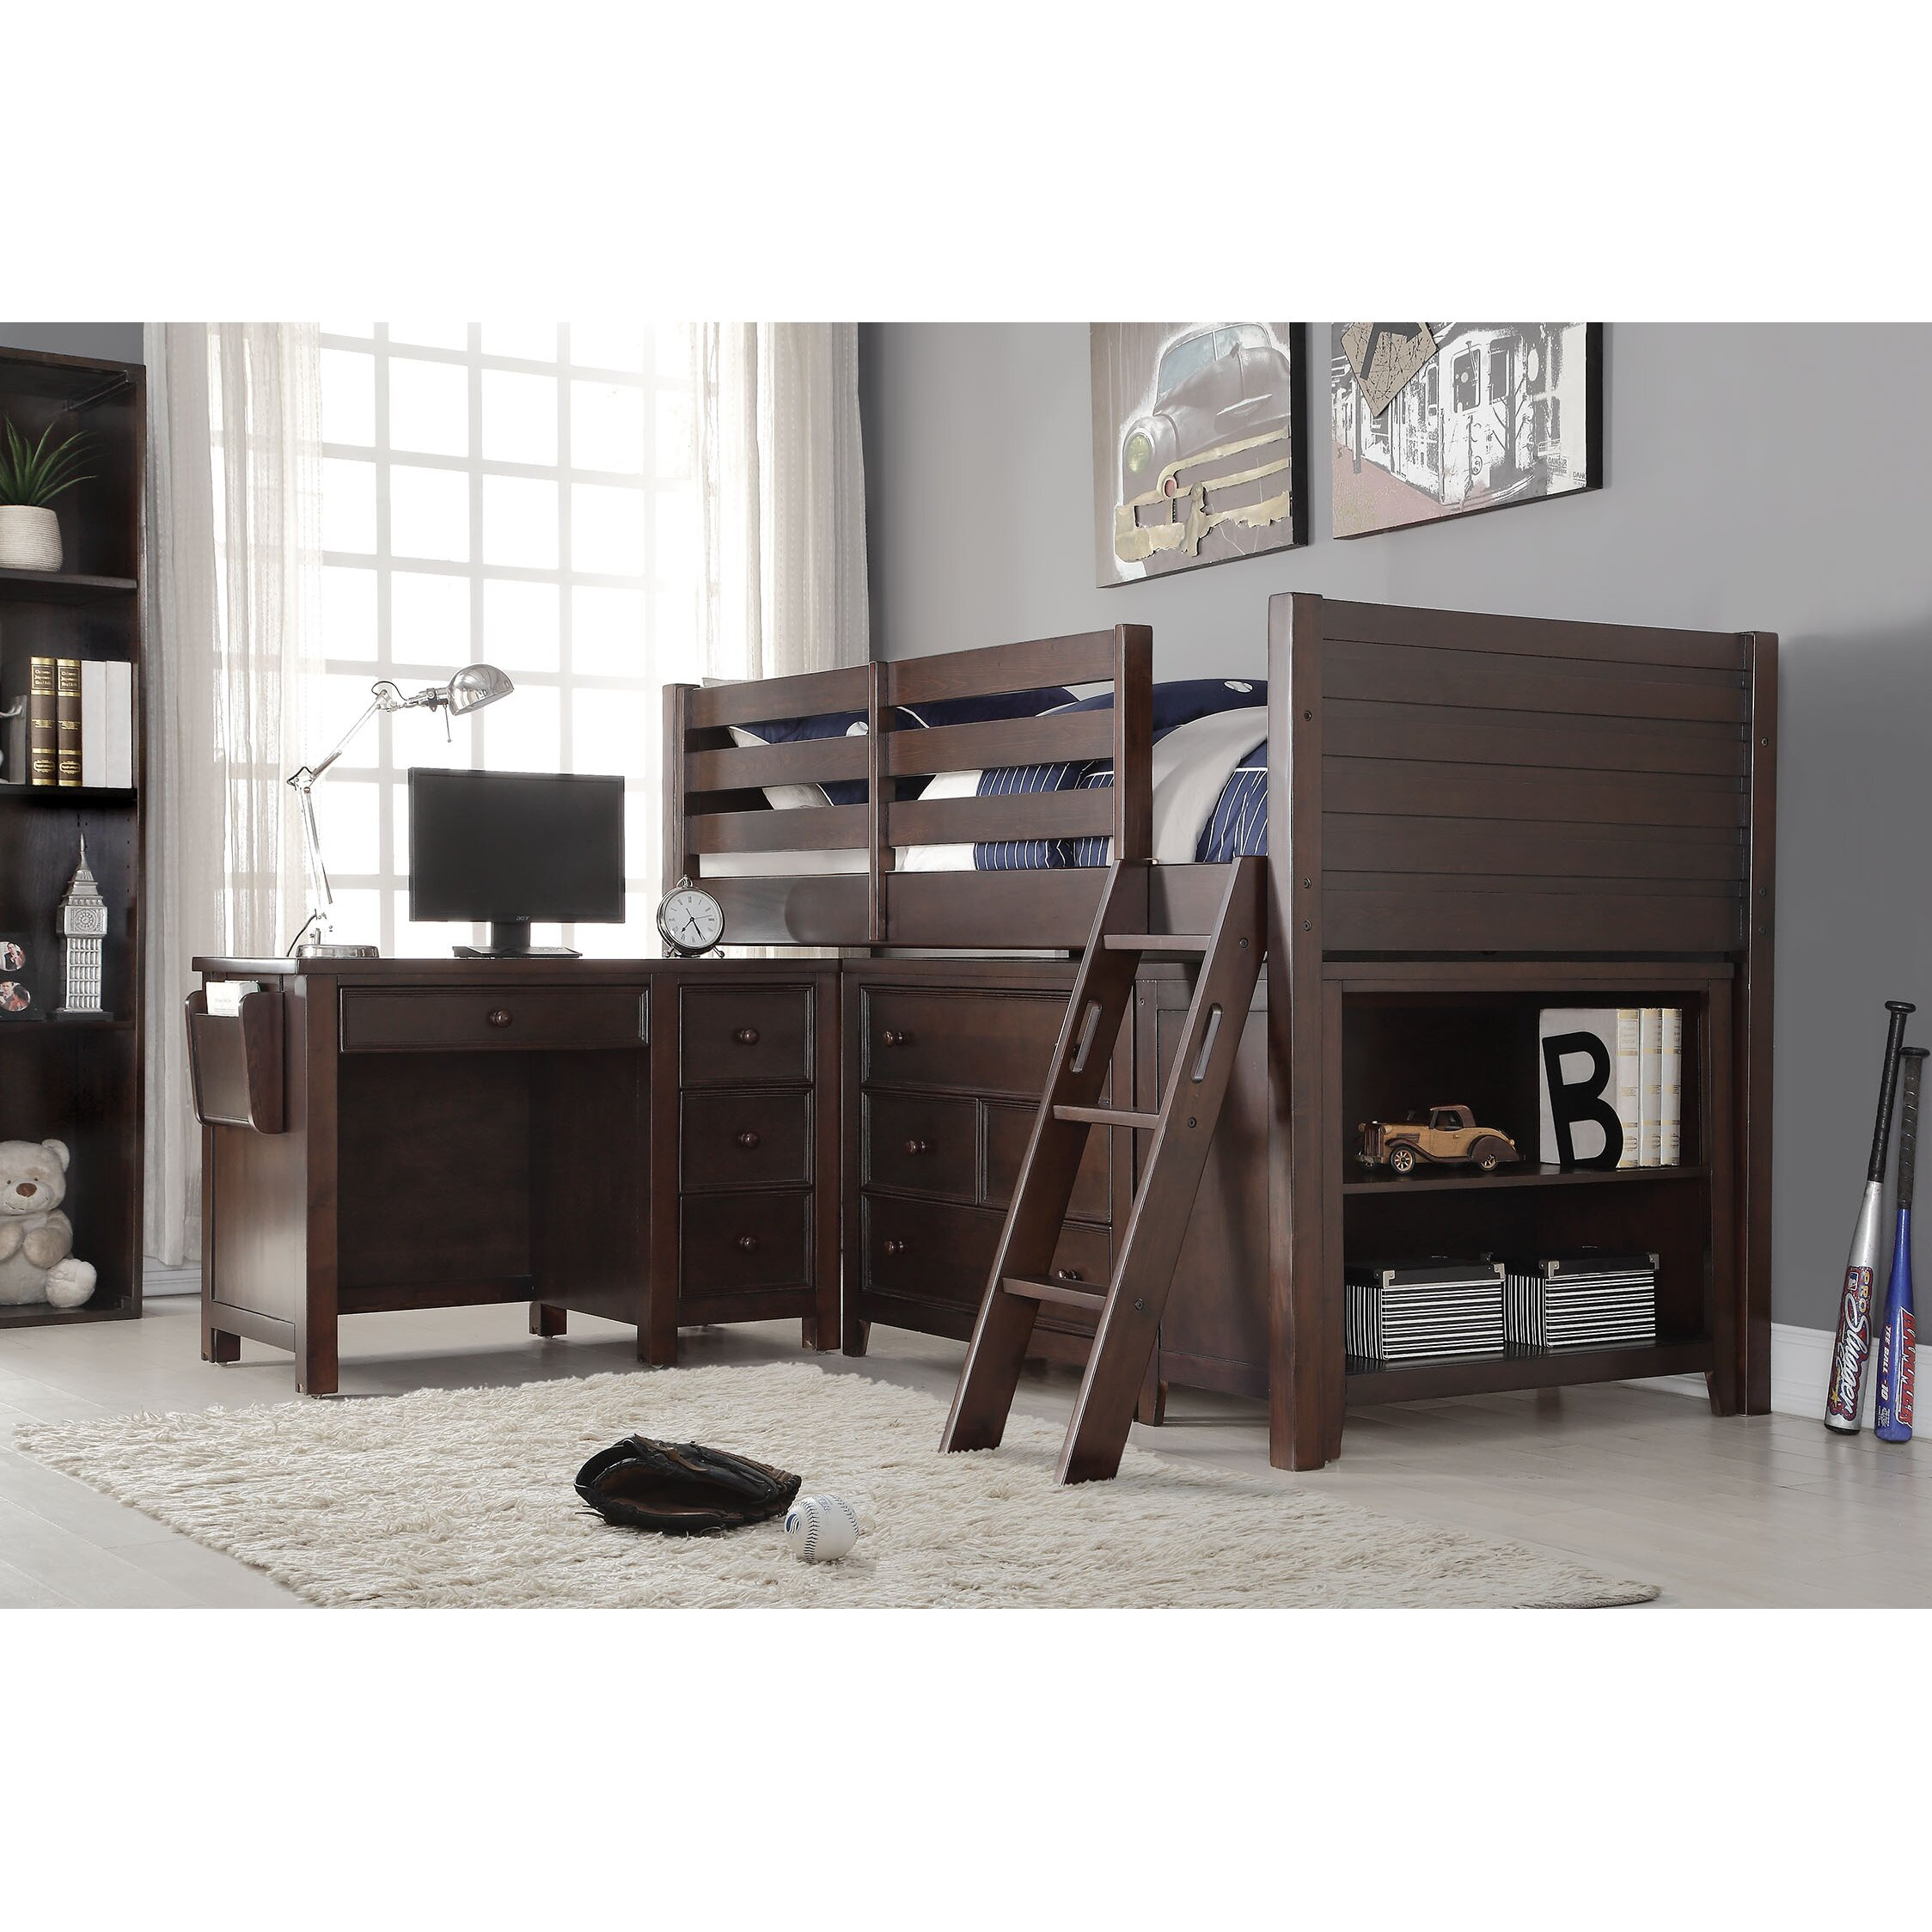 Acme furniture lacey loft 2 piece bedroom set for Loft furniture